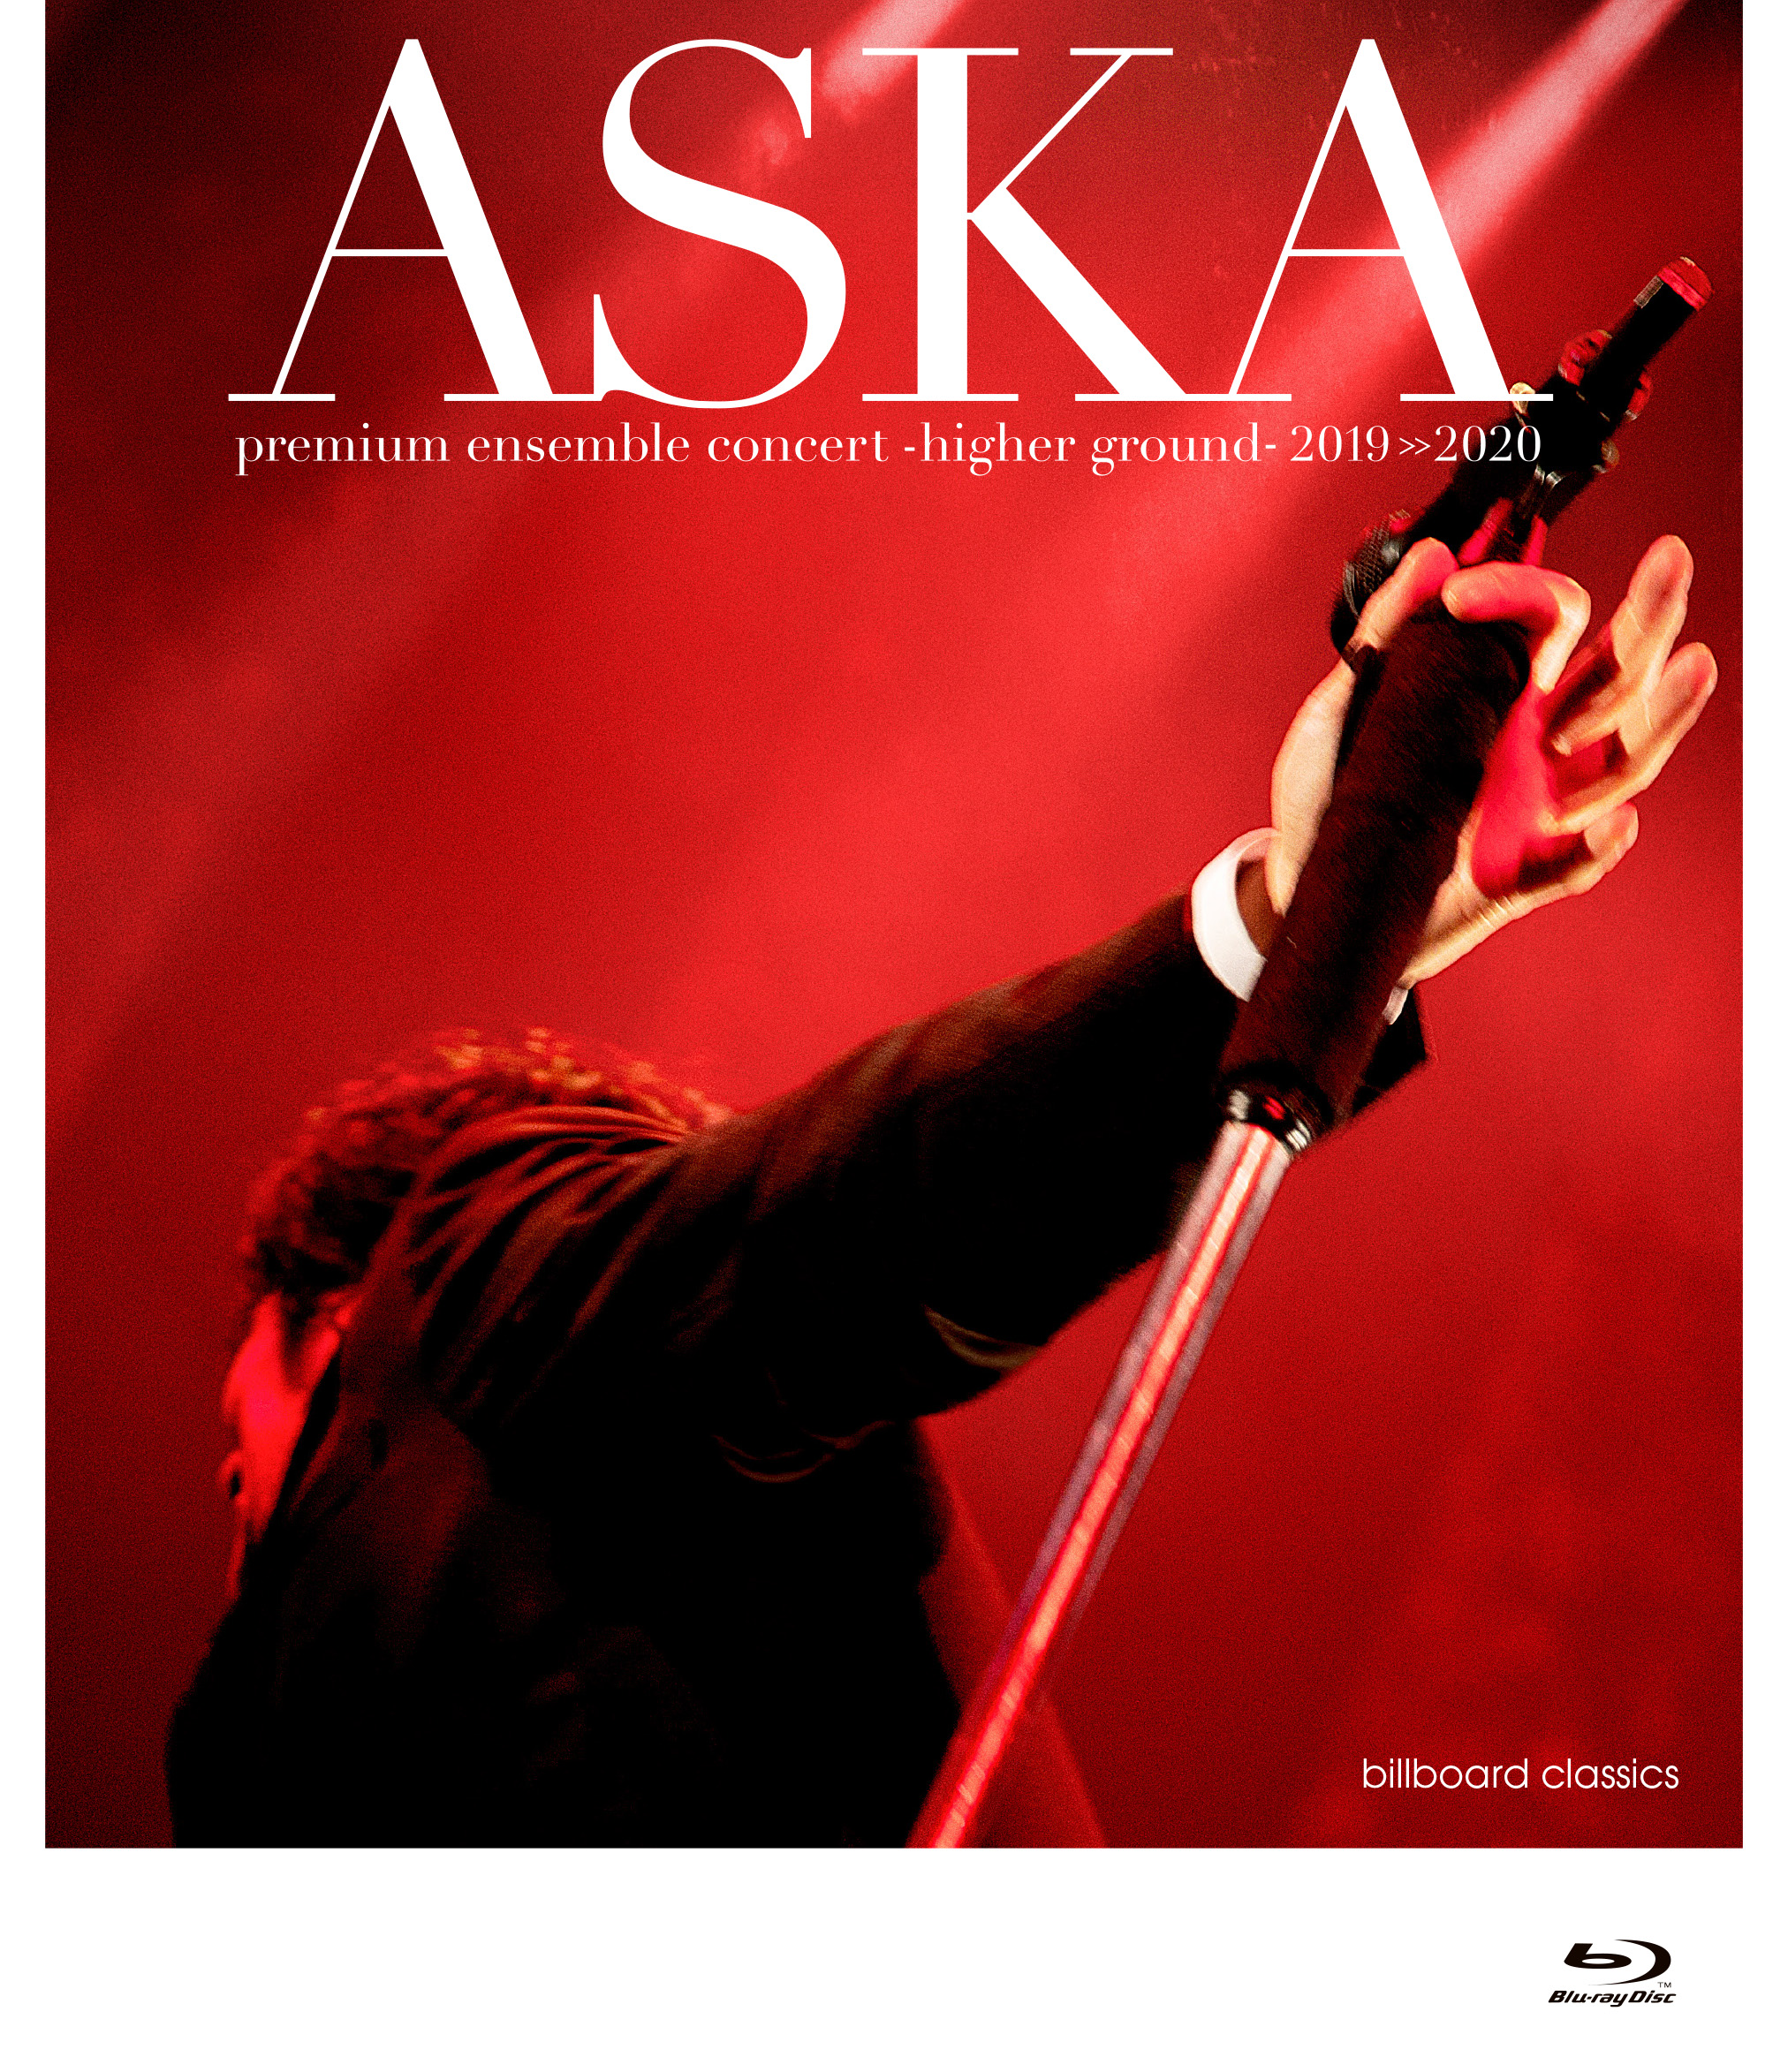 ASKA premium ensemble concert -higher ground- 2019>>2020【Blu-ray+LIVE CD】